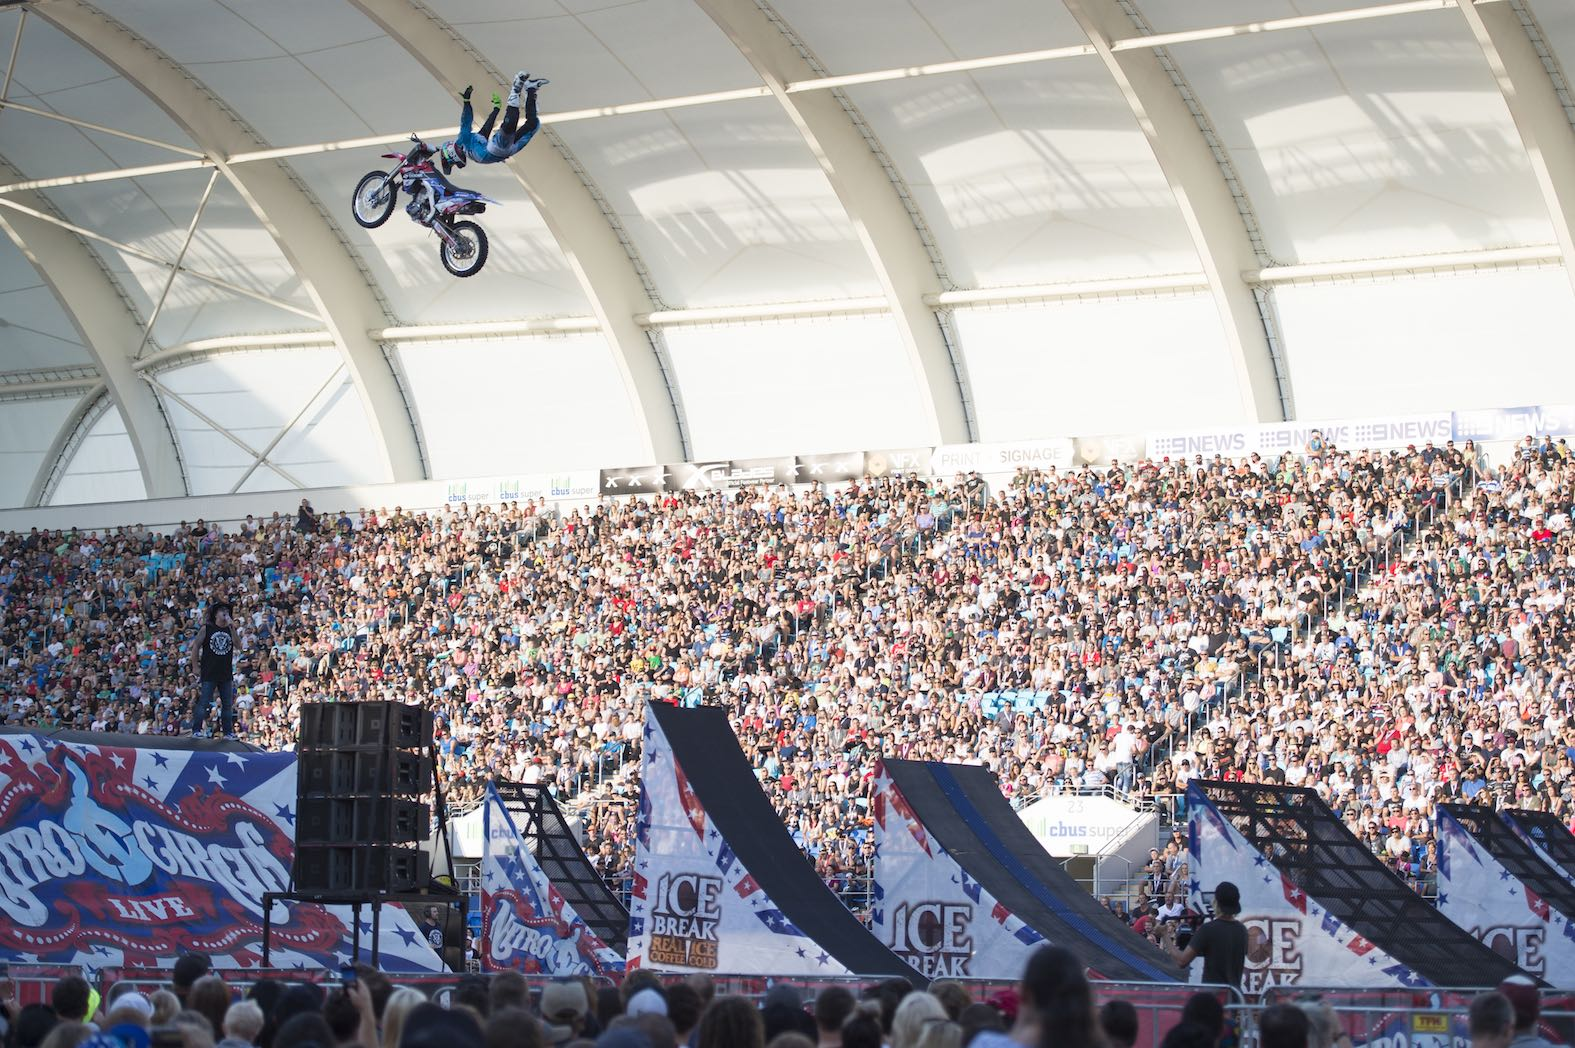 FMX rider Harry Bink flying high above the Nitro Circus Love fans